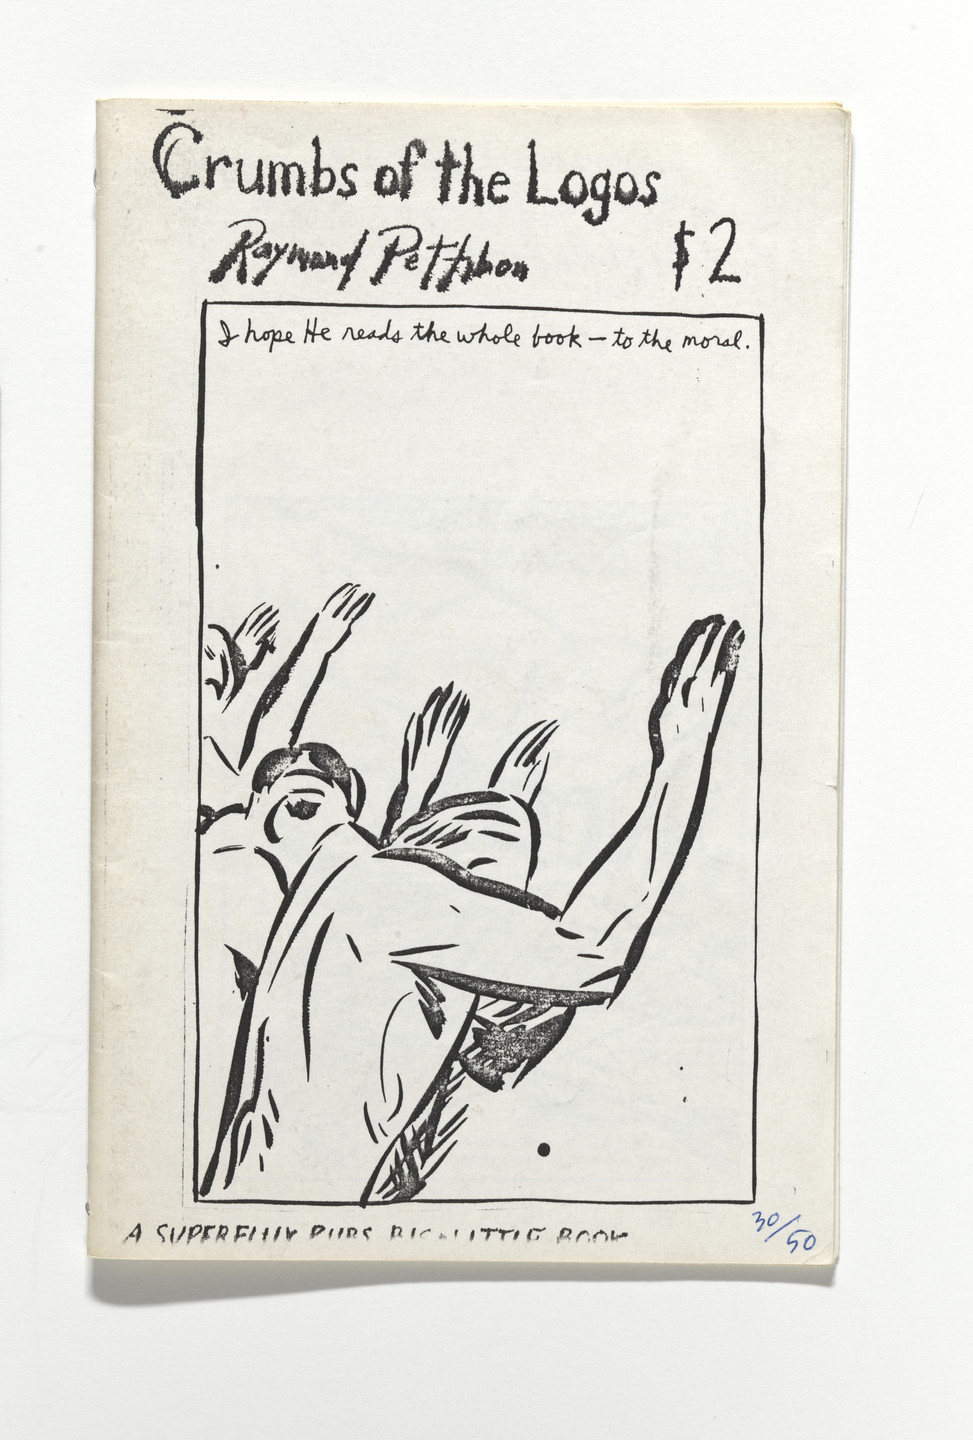 Raymond Pettibon. Crumbs of the Logos. 1990